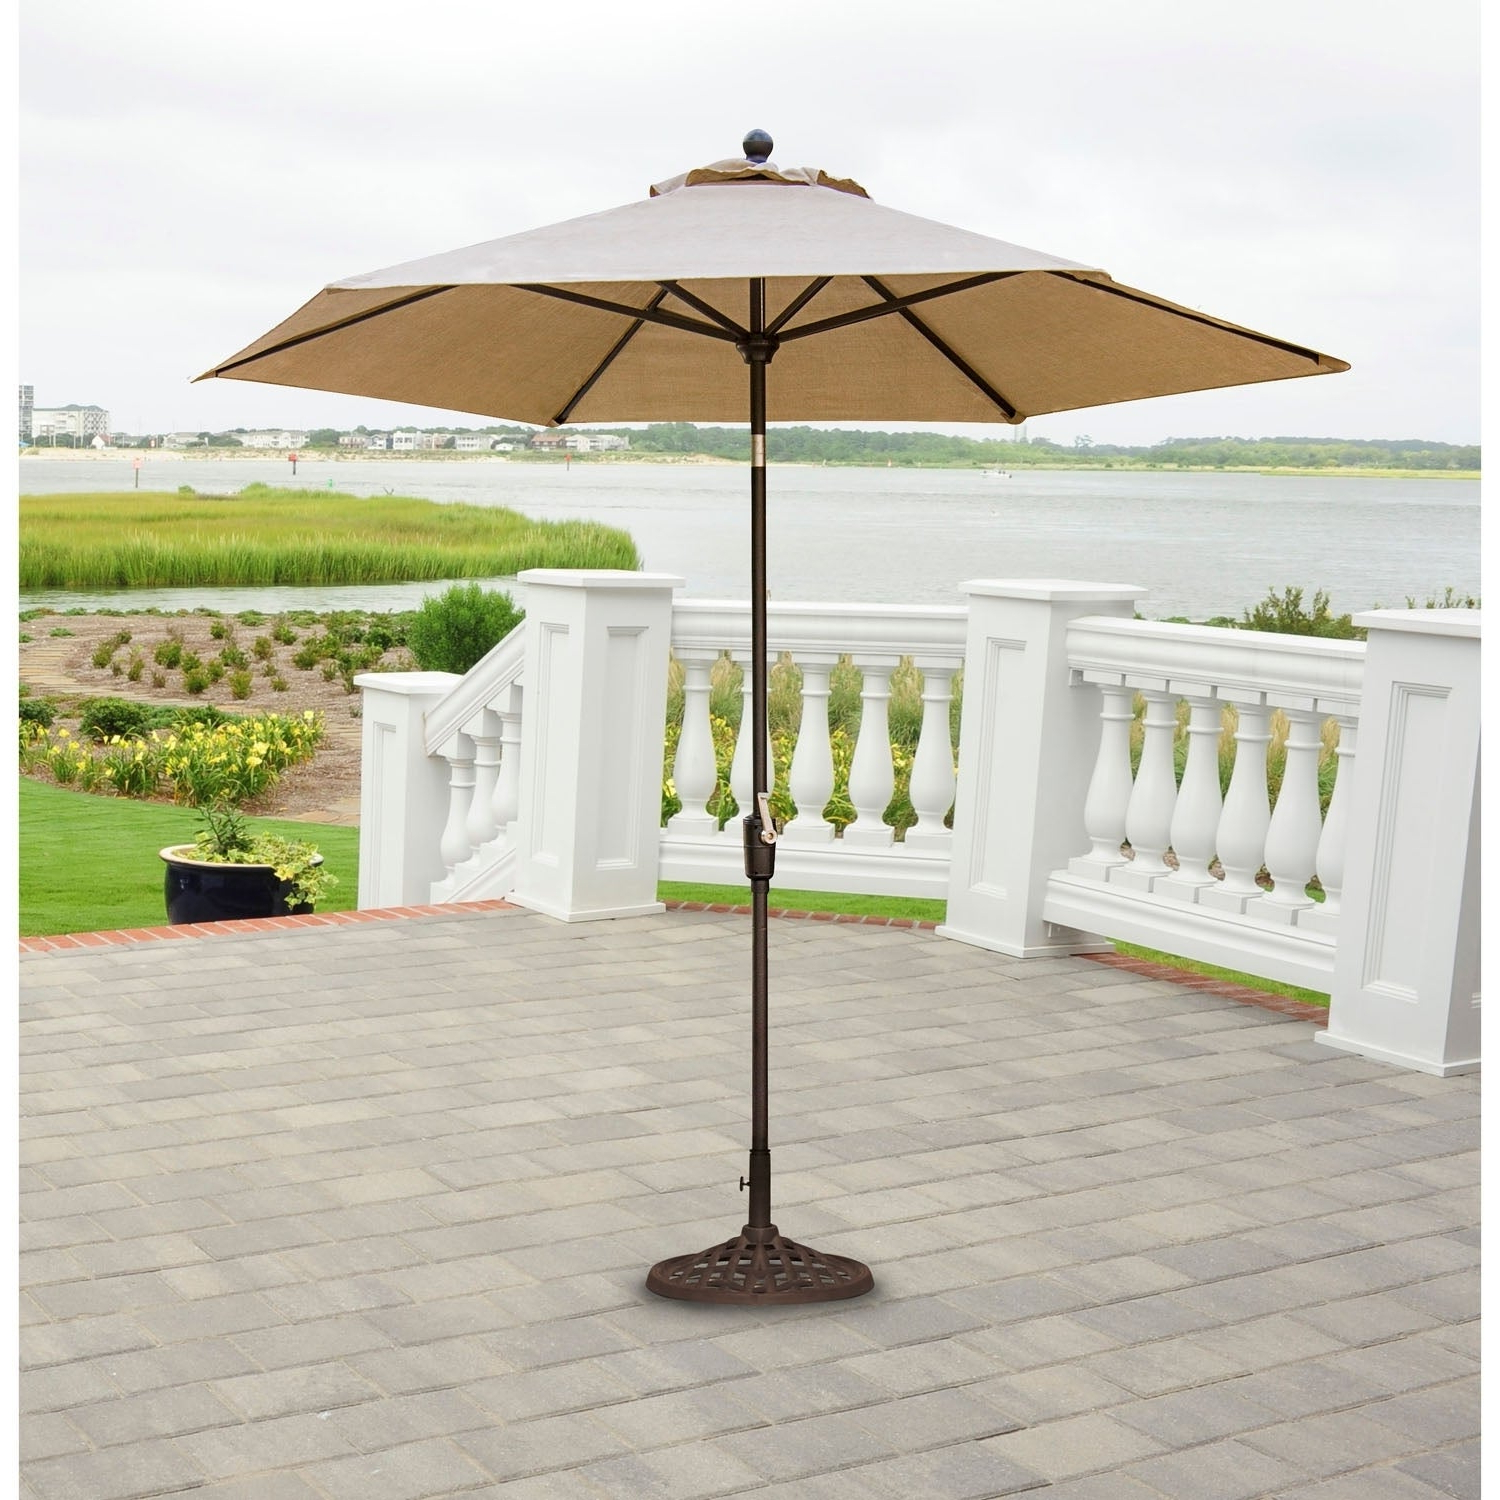 2020 Hanover Outdoor Tradumb 11 Traditions 11 Foot Market Umbrella Inside Julian Market Sunbrella Umbrellas (View 1 of 20)